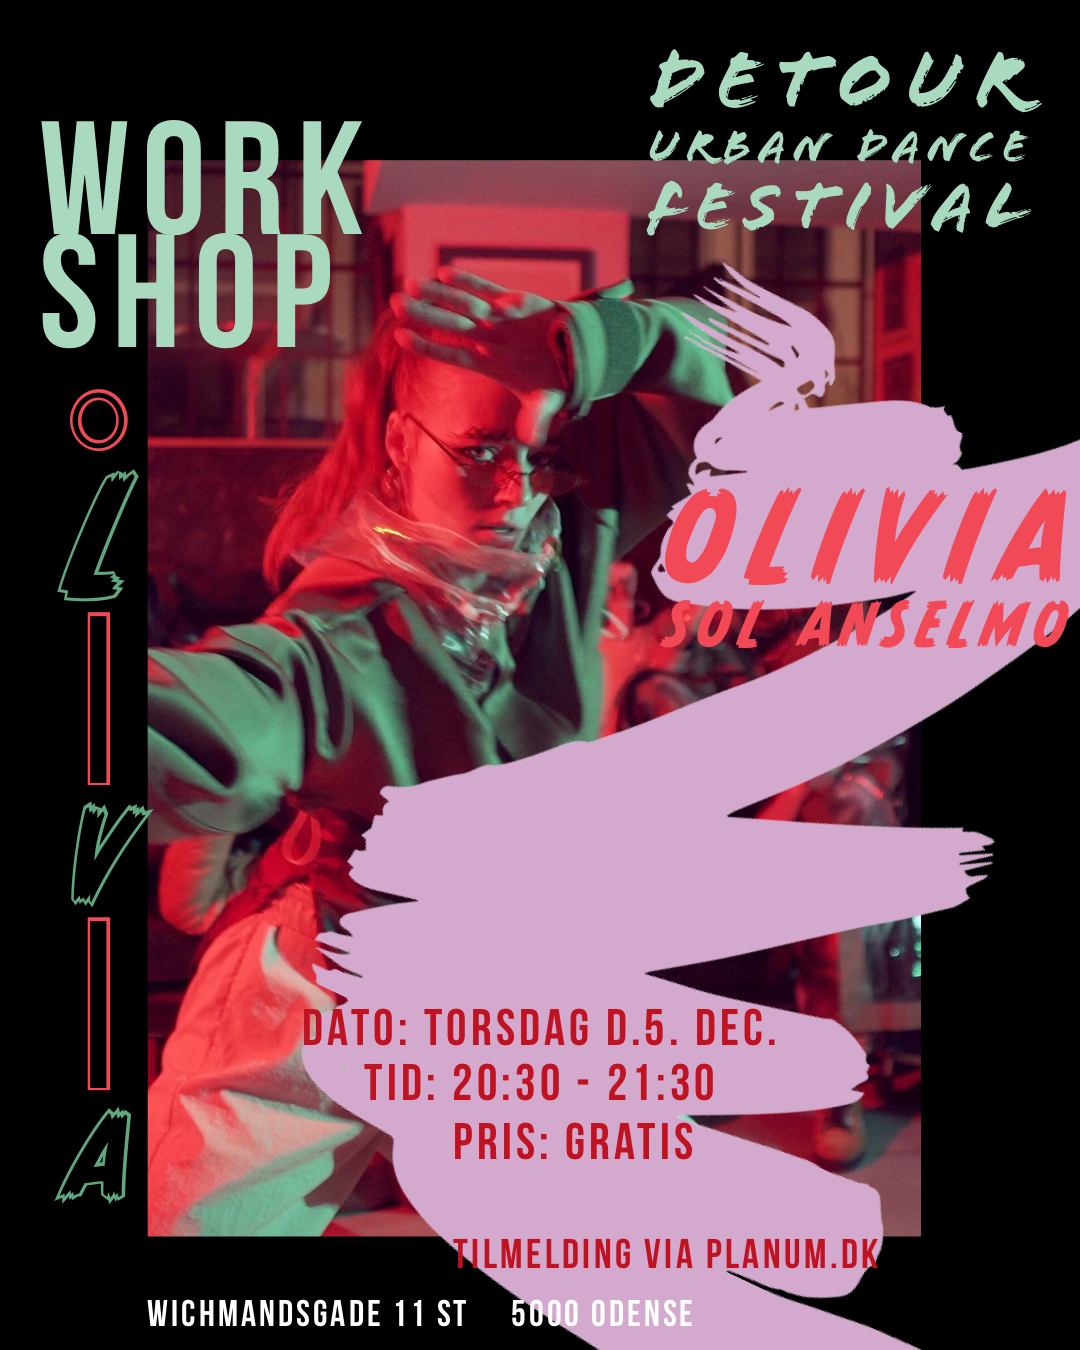 Gratis workshop x Olivia Sol Anselmo